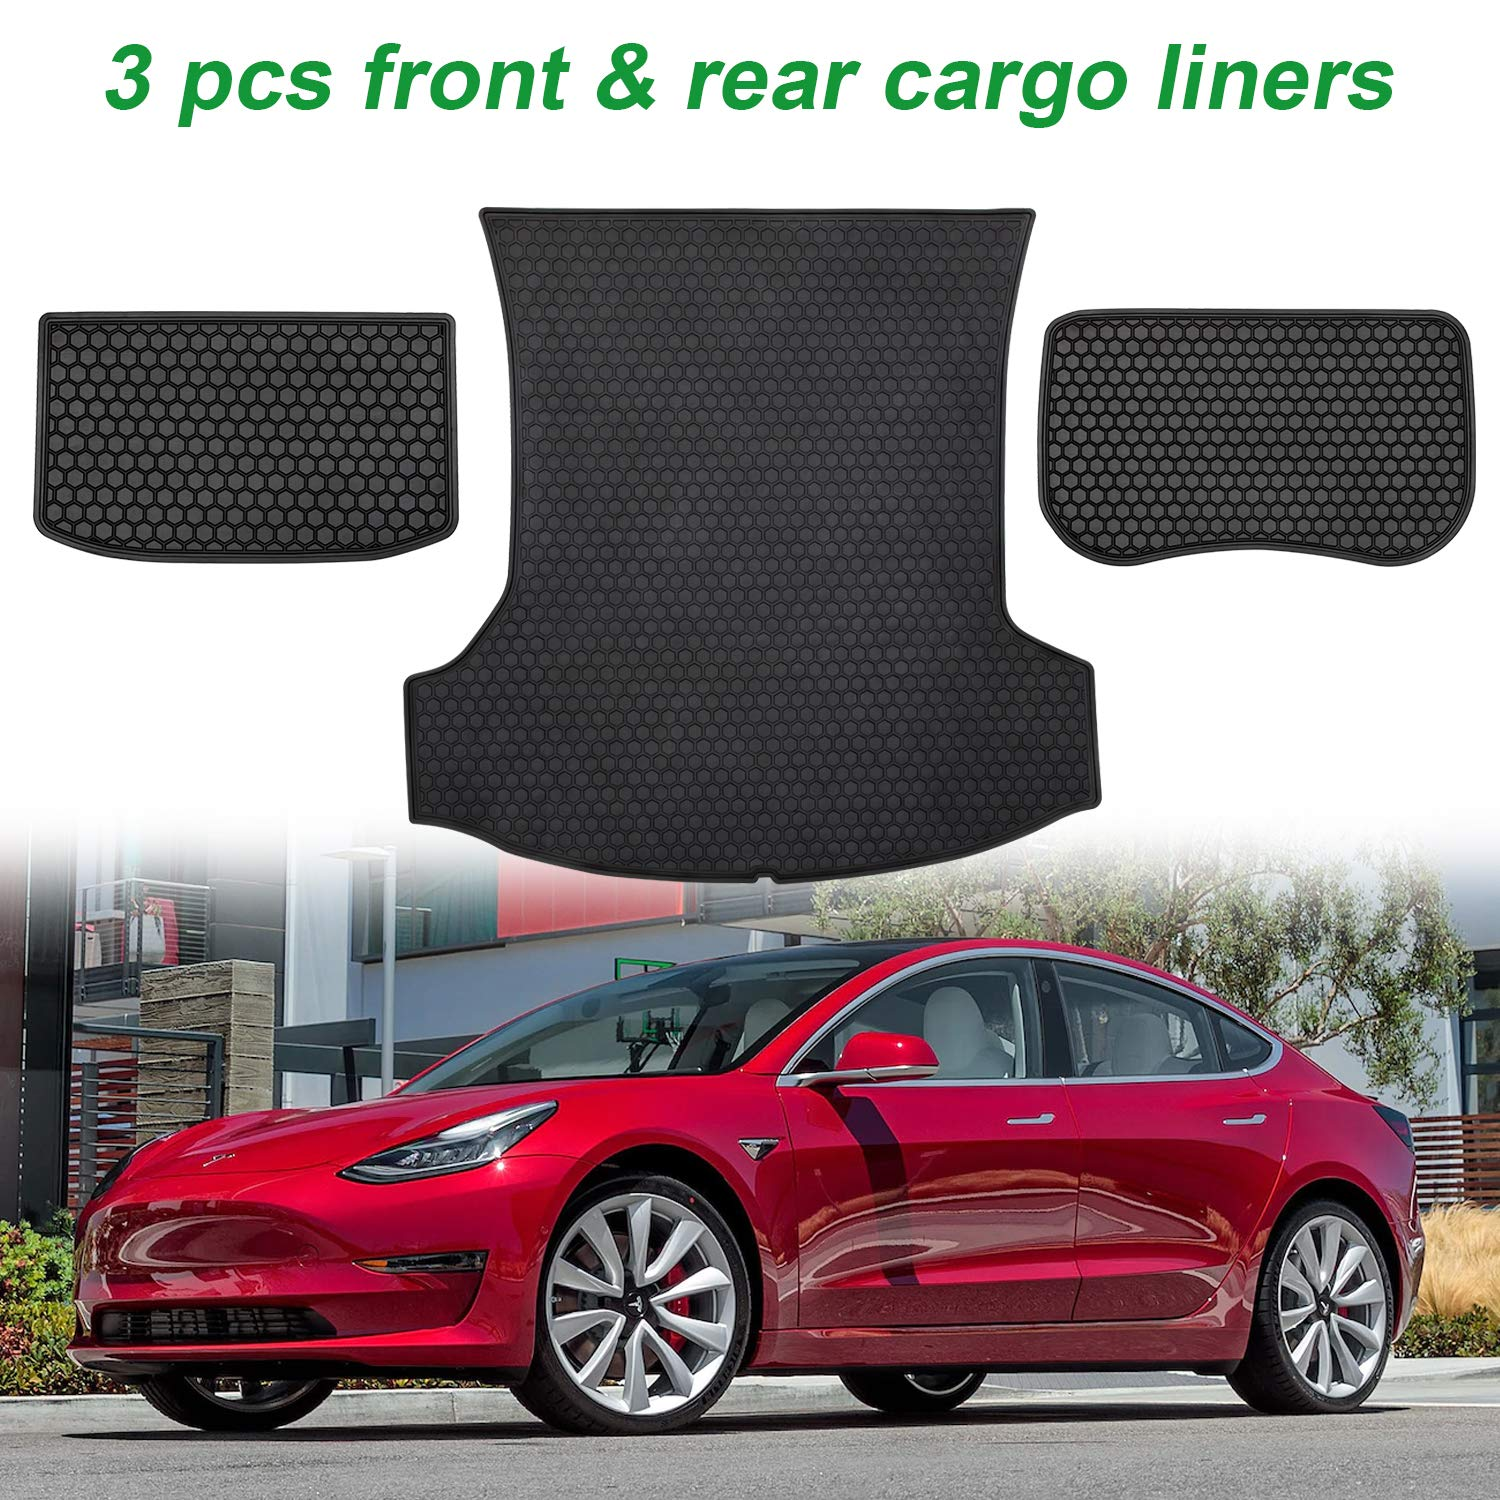 Danti Floor Liners Mat All Weather Interior Set for 2017-2019 Tesla Model 3 Rubber Slush Front and Rear Seat Waterproof Protection Floor Mats 6pcs//Set